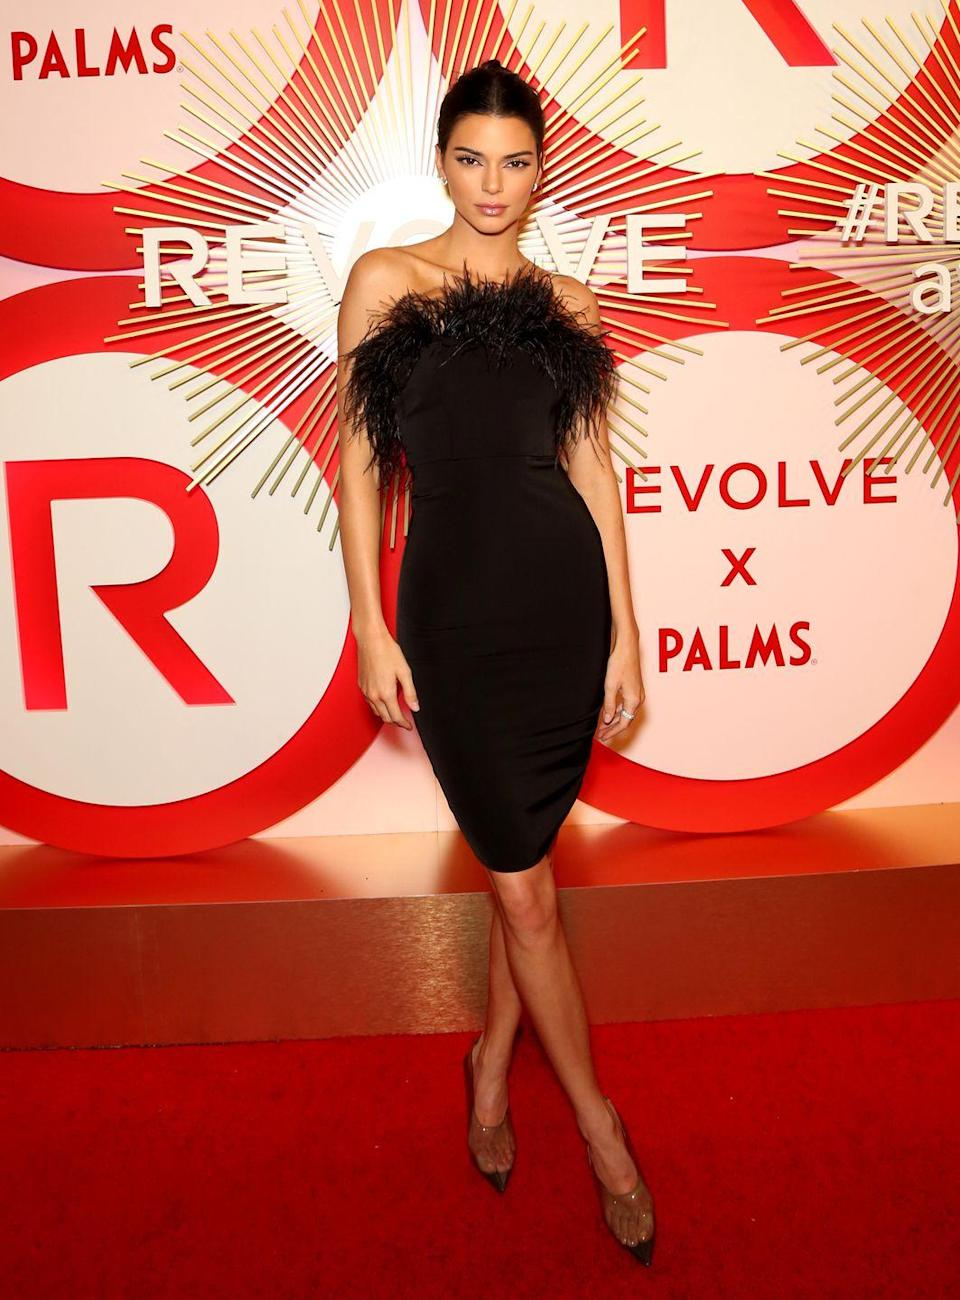 <p>This was the year of see-through footwear, as seen here on Kendall Jenner at the Revolve awards in Las Vegas. </p>